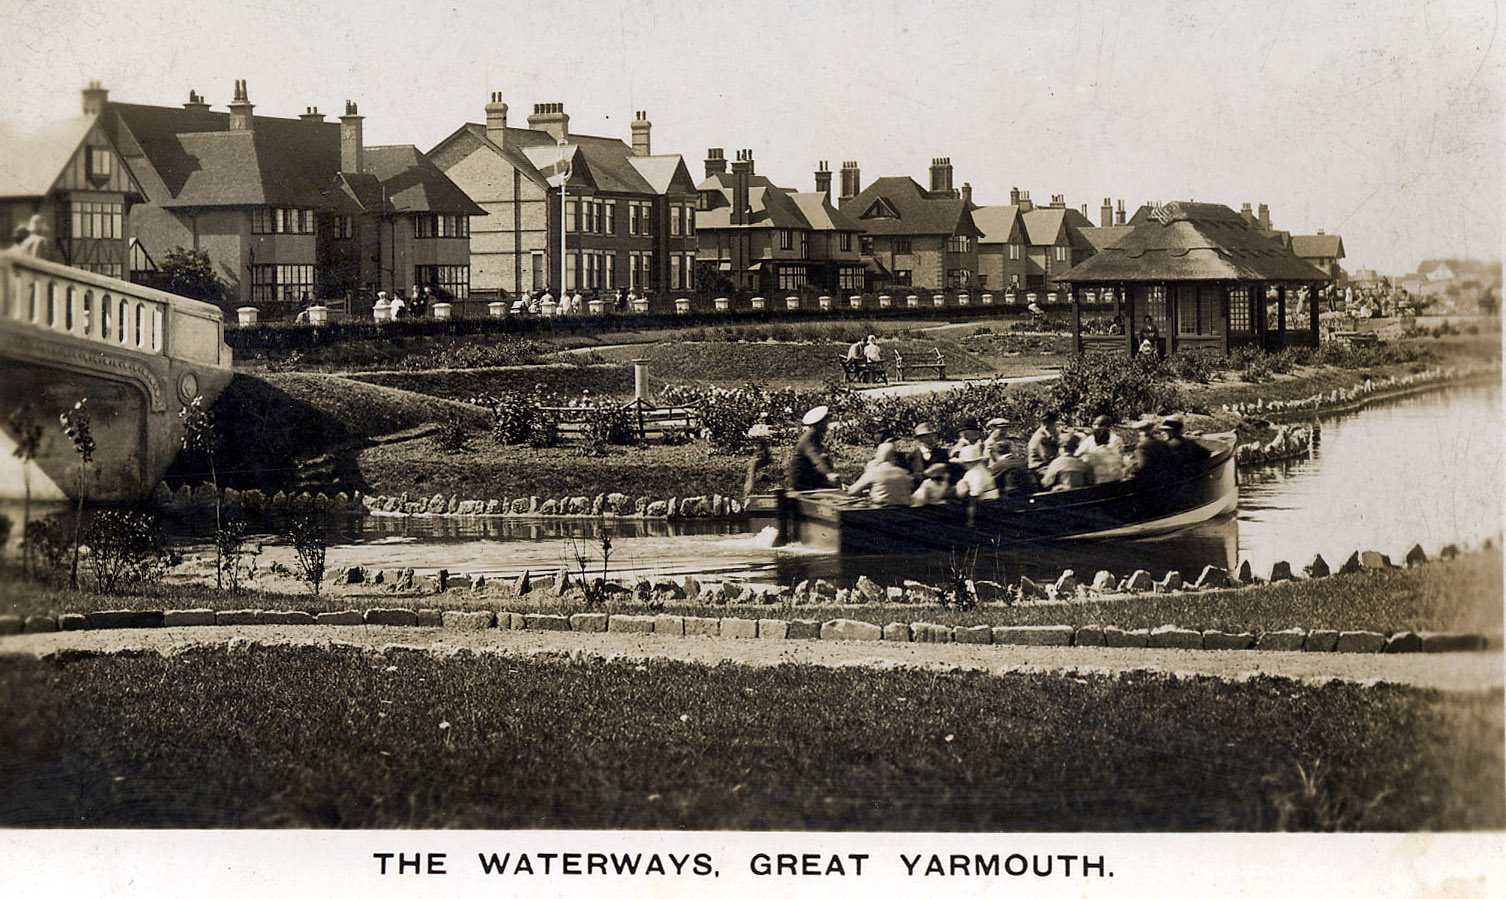 The Waterways